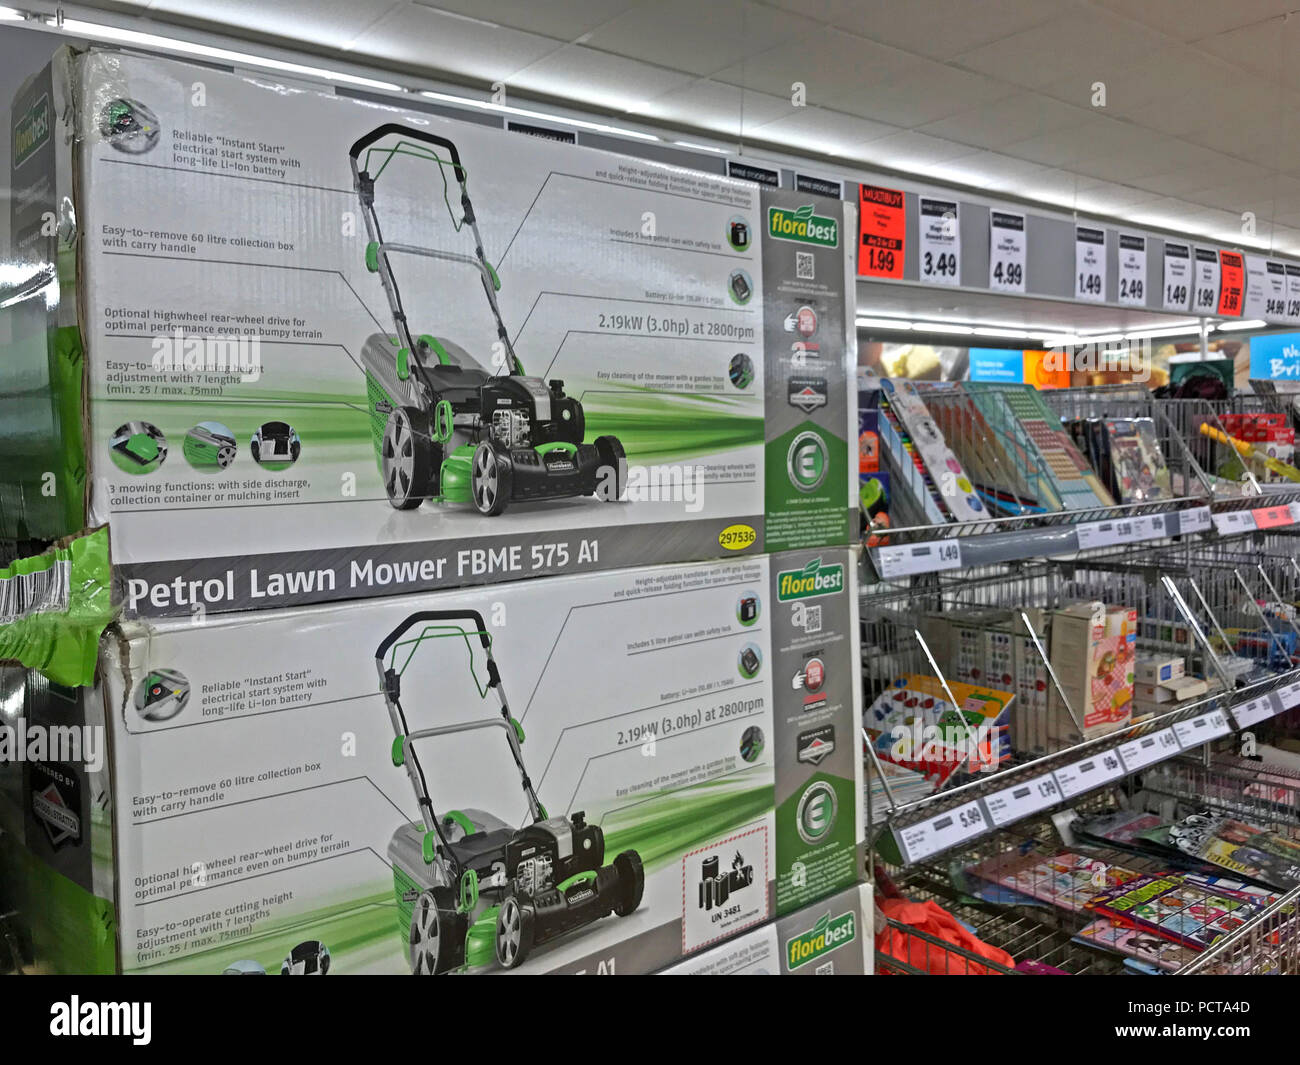 Centre Aisle of a discount supermarket, Lidl, Aldi, lawnmowers, hedge trimmers, Latchford, Warrington, Cheshire, North West England, UK - Stock Image